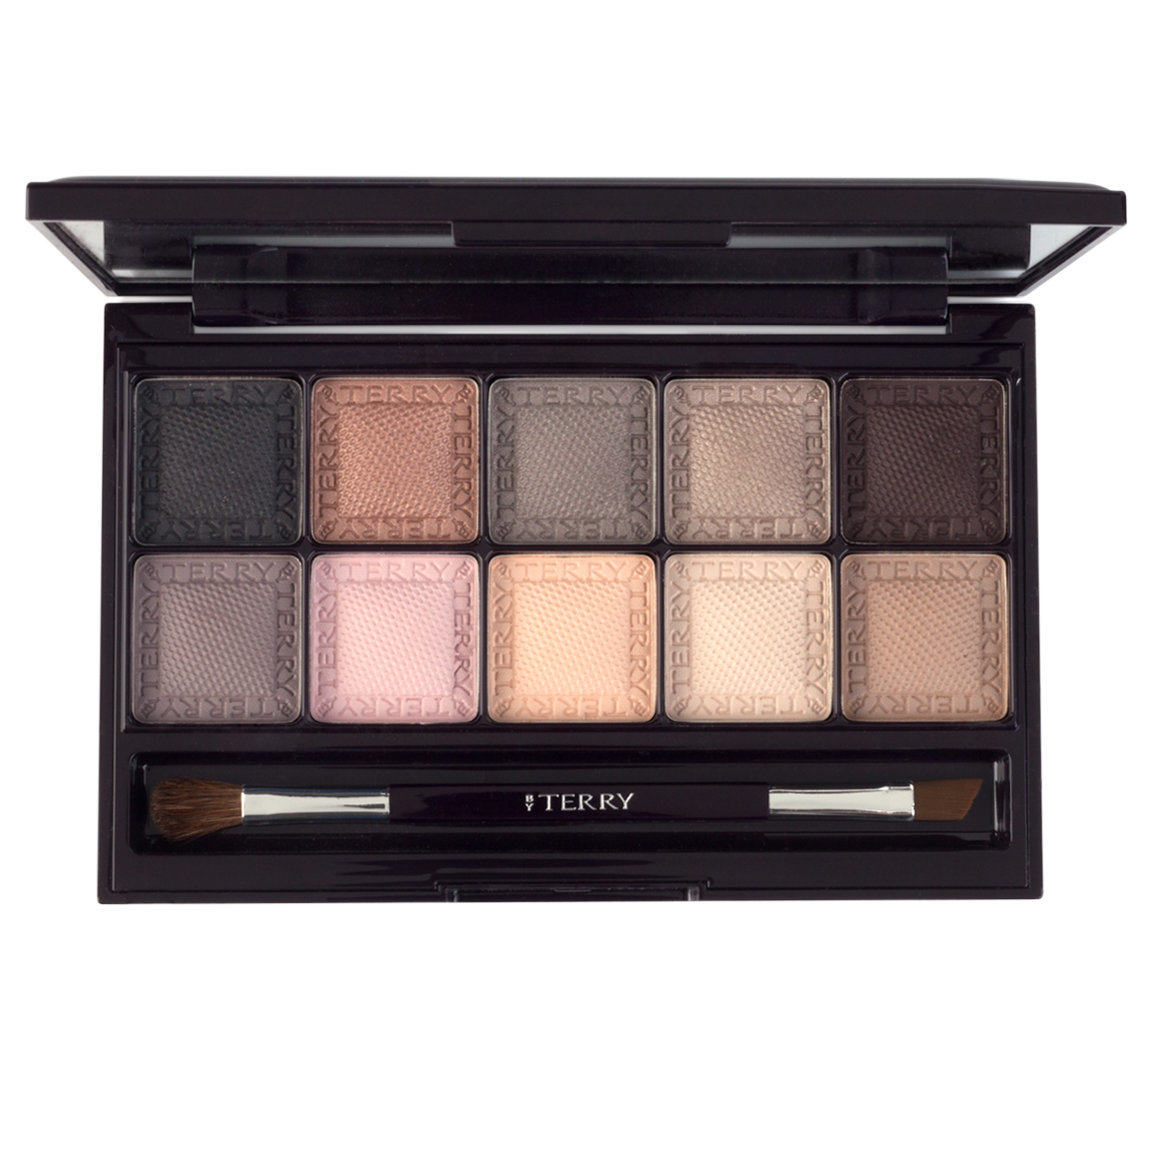 BY TERRY Eye Designer Palette 1 Smoky Nude product swatch.